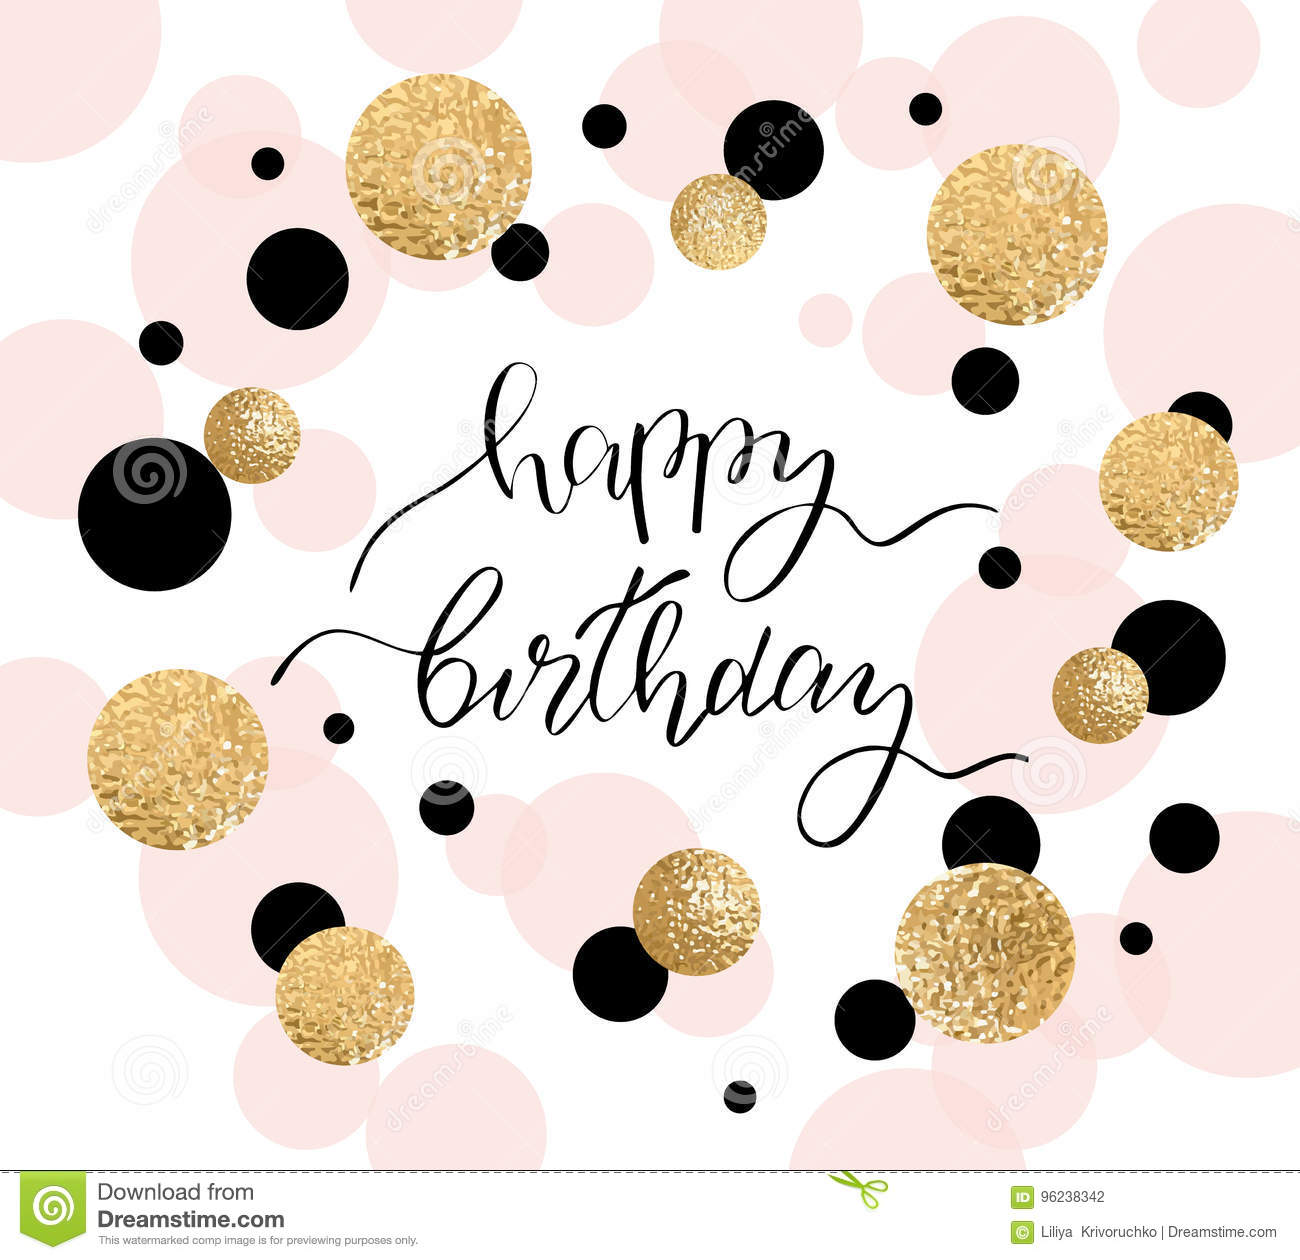 Happy birthday greeting card and party invitation template. Vector illustration.